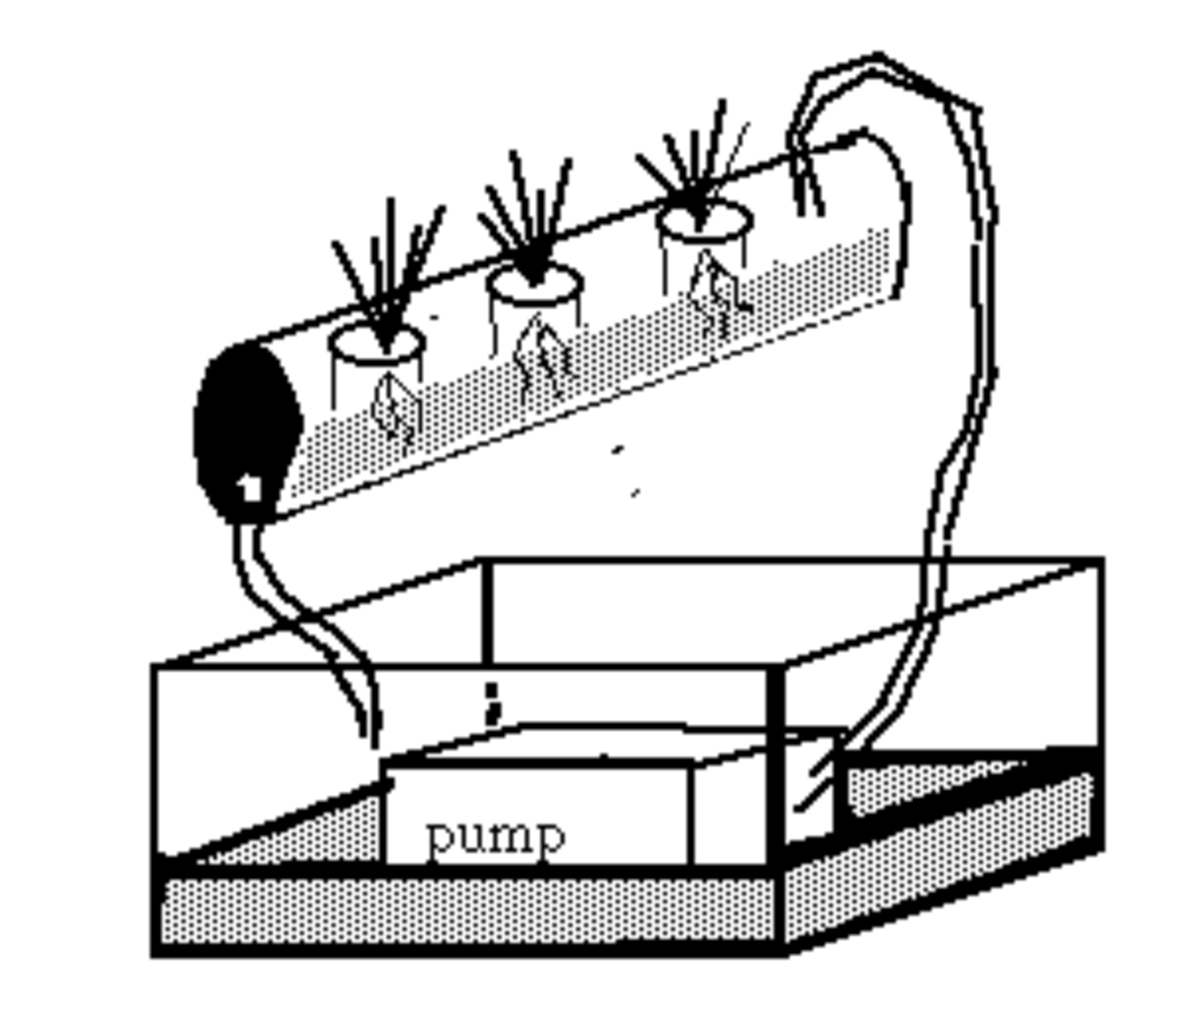 Hydroponic systems pump a dilute nutrient solution on a regular schedule to maintain optimal growth conditions.  Sand is one type of media that is used in these systems.